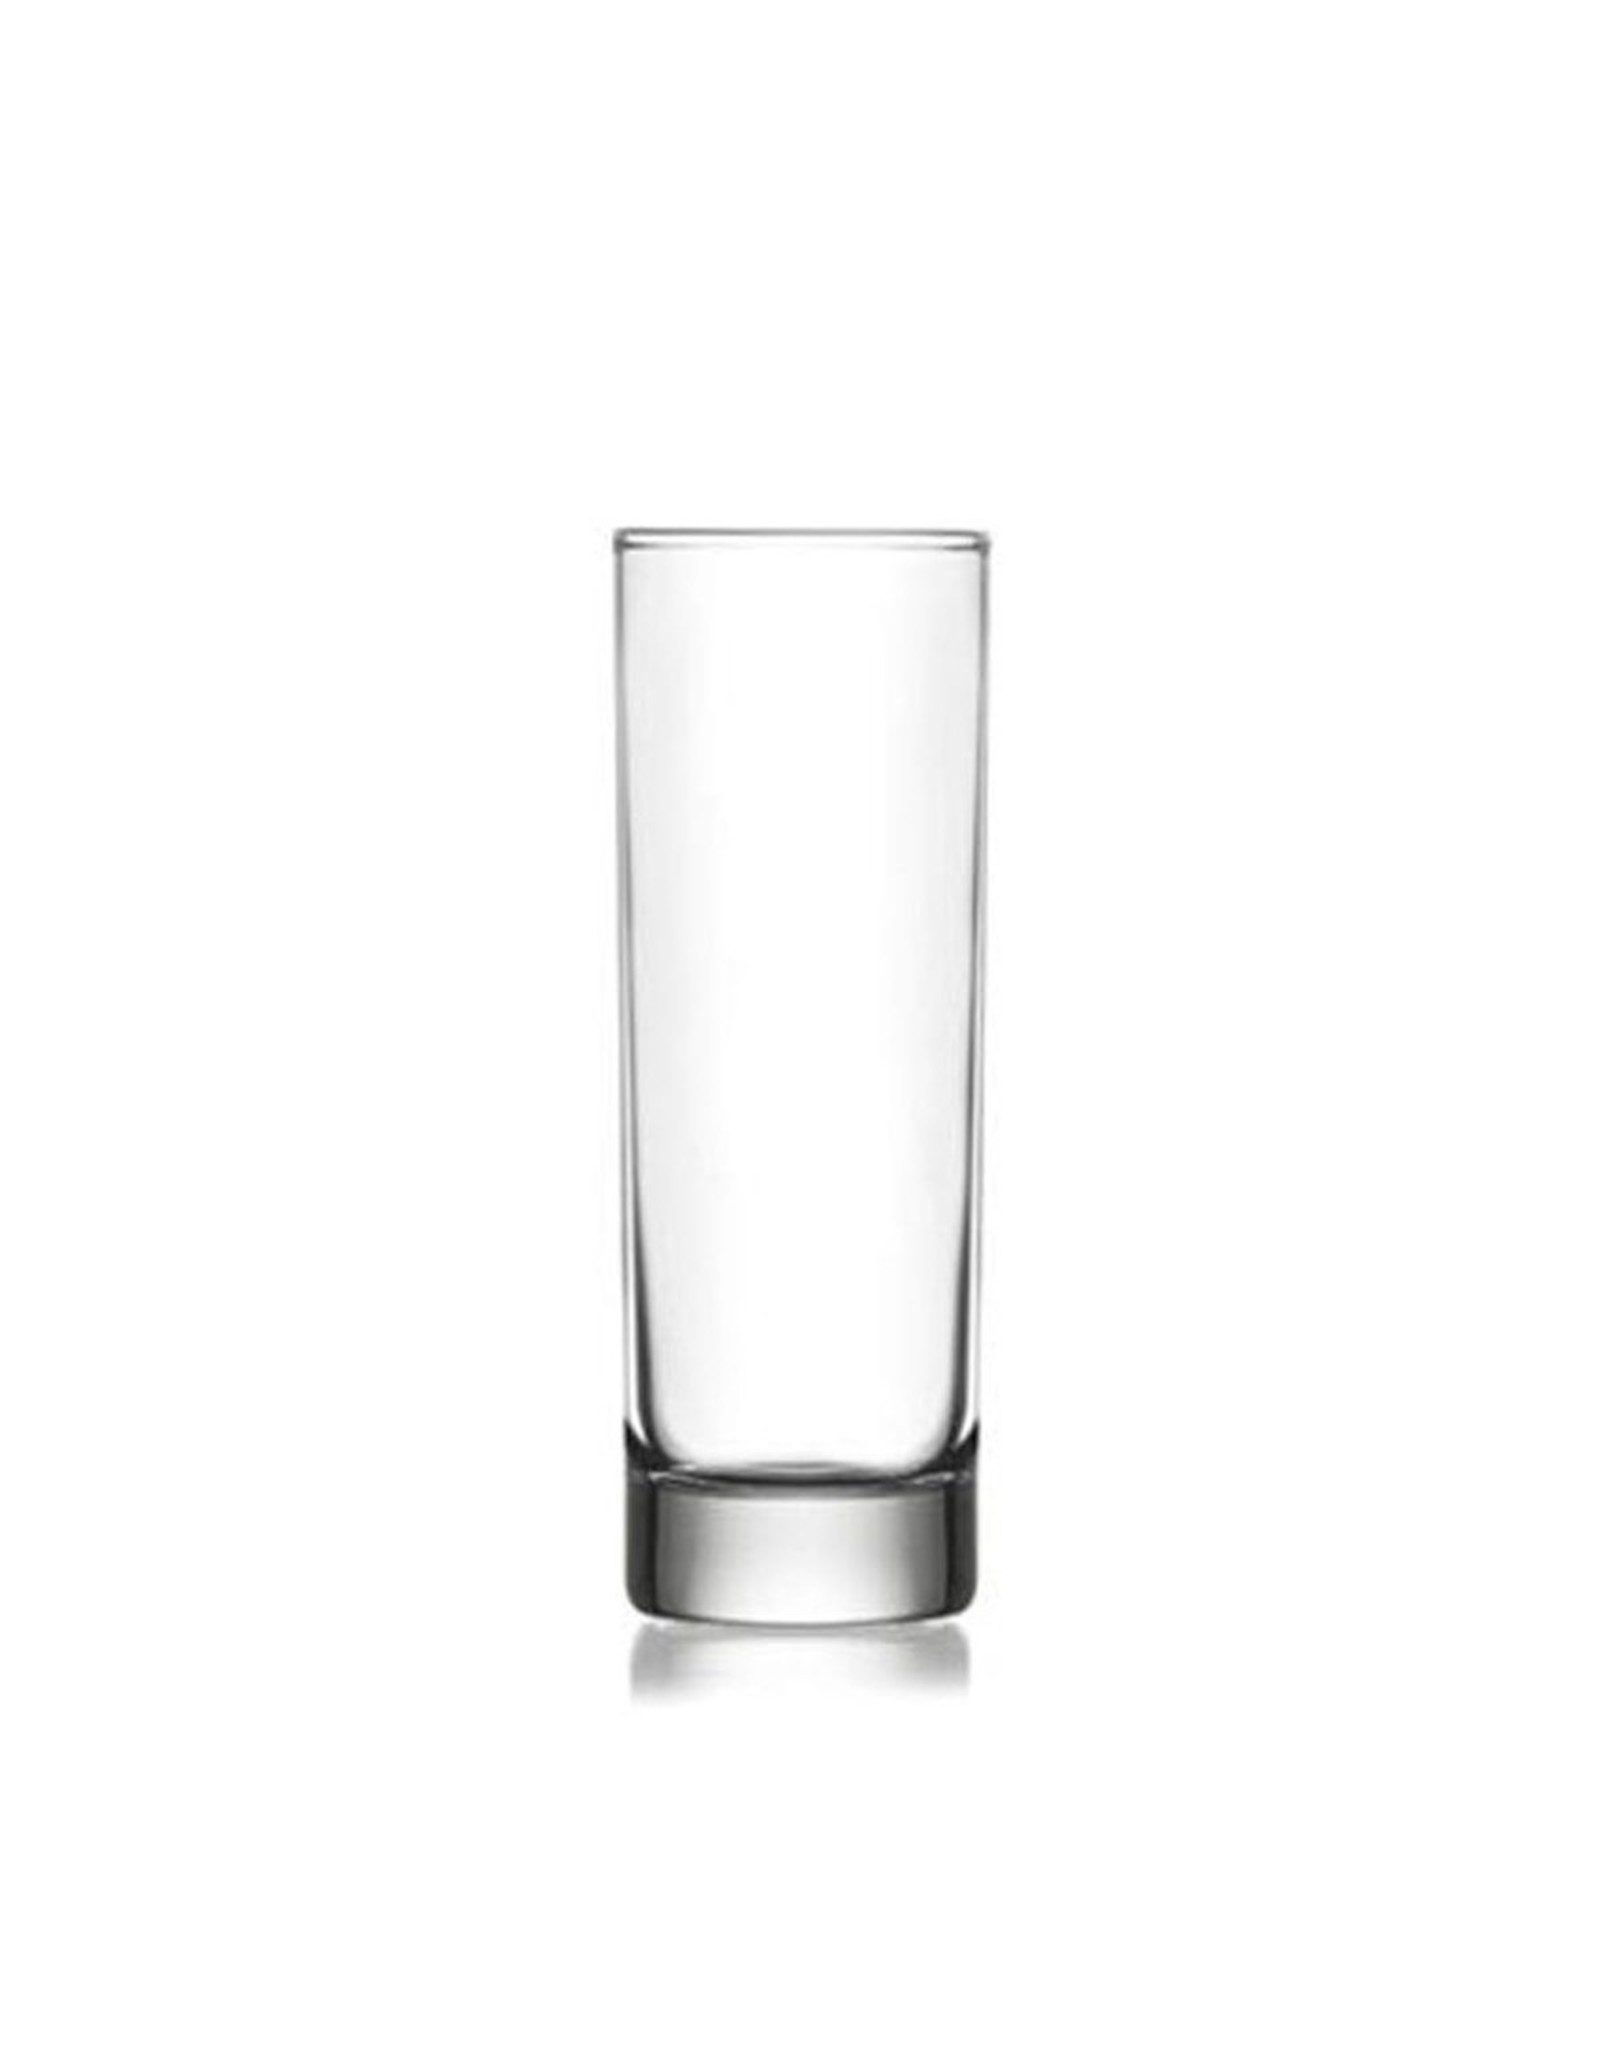 ADA 10.25 OZ Drinking Glass,Pack of 6